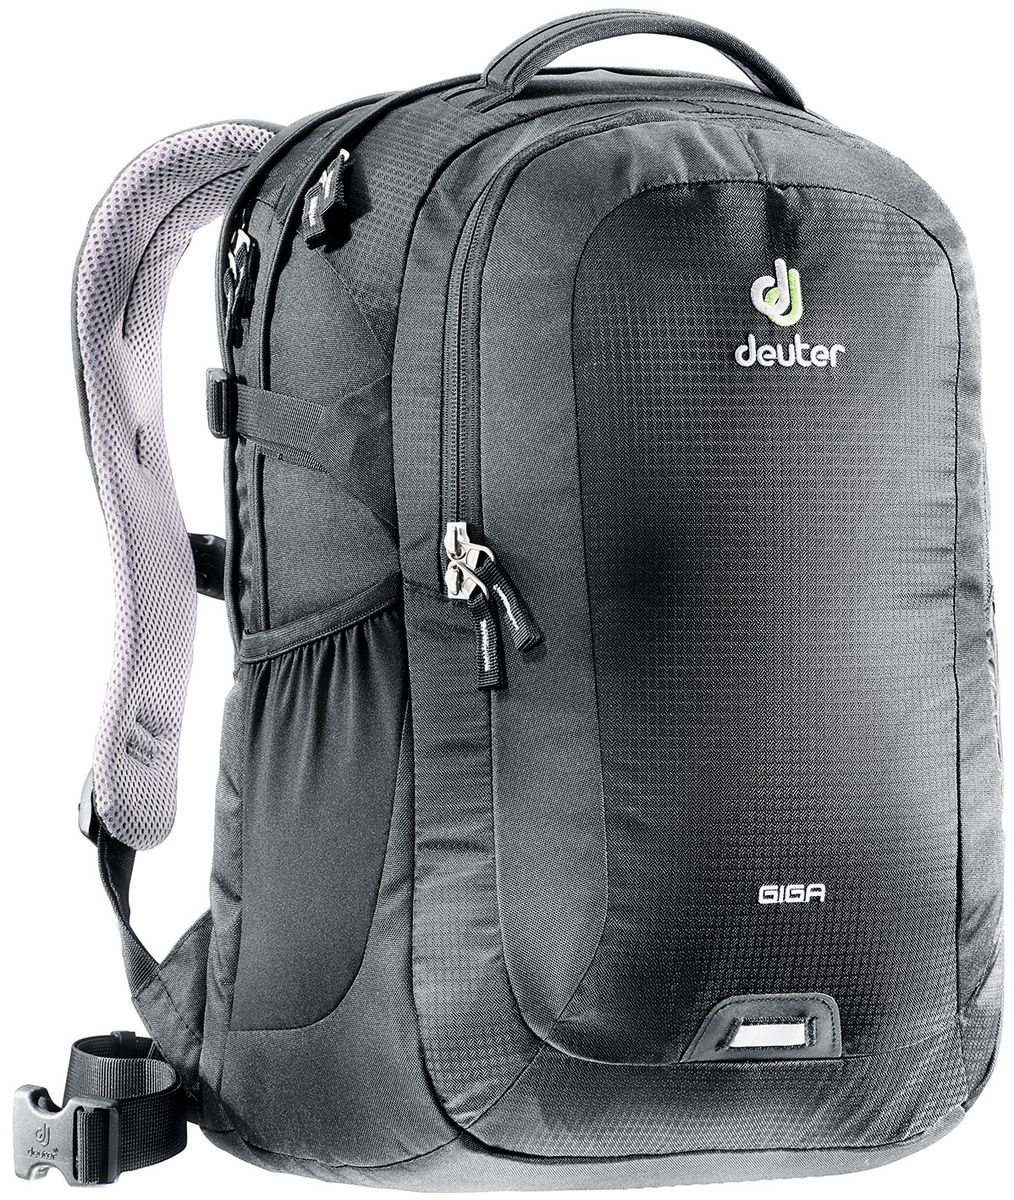 Рюкзак Deuter Daypacks Giga, цвет: черный, 28 л рюкзак deuter daypacks giga aubergine check б р uni